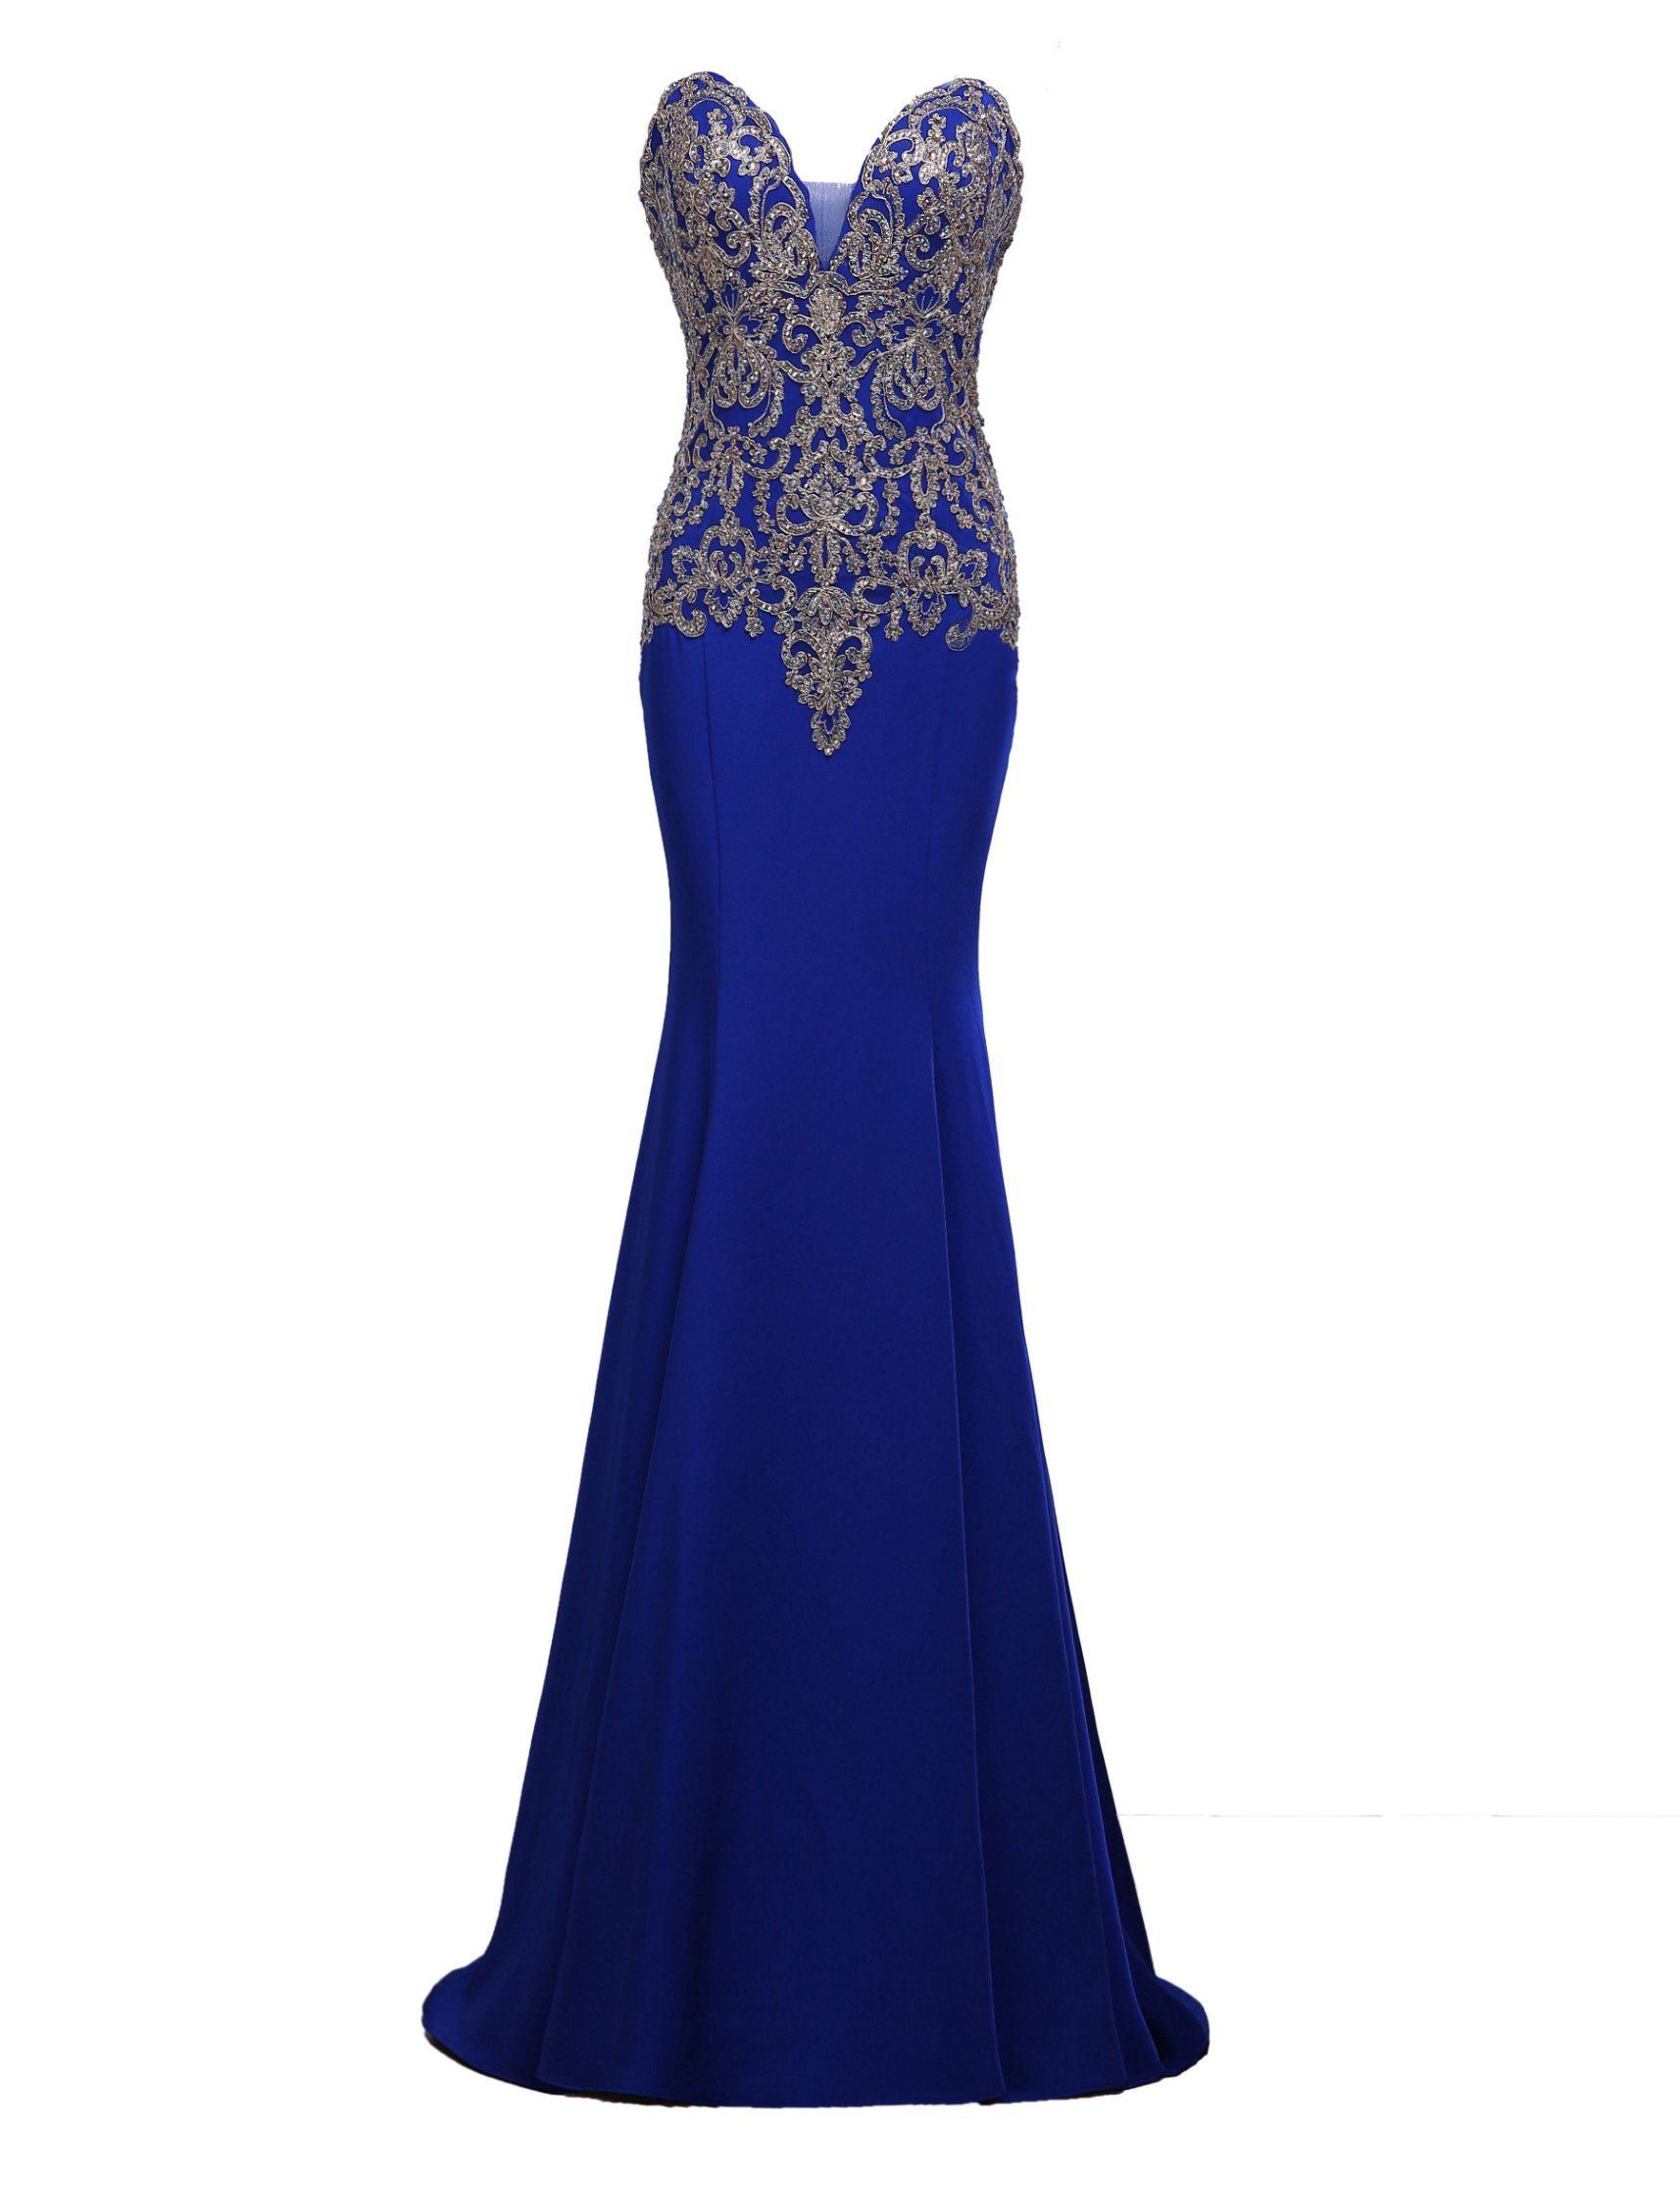 9cfe63d4a7e Gold Lace Applique Prom Dress